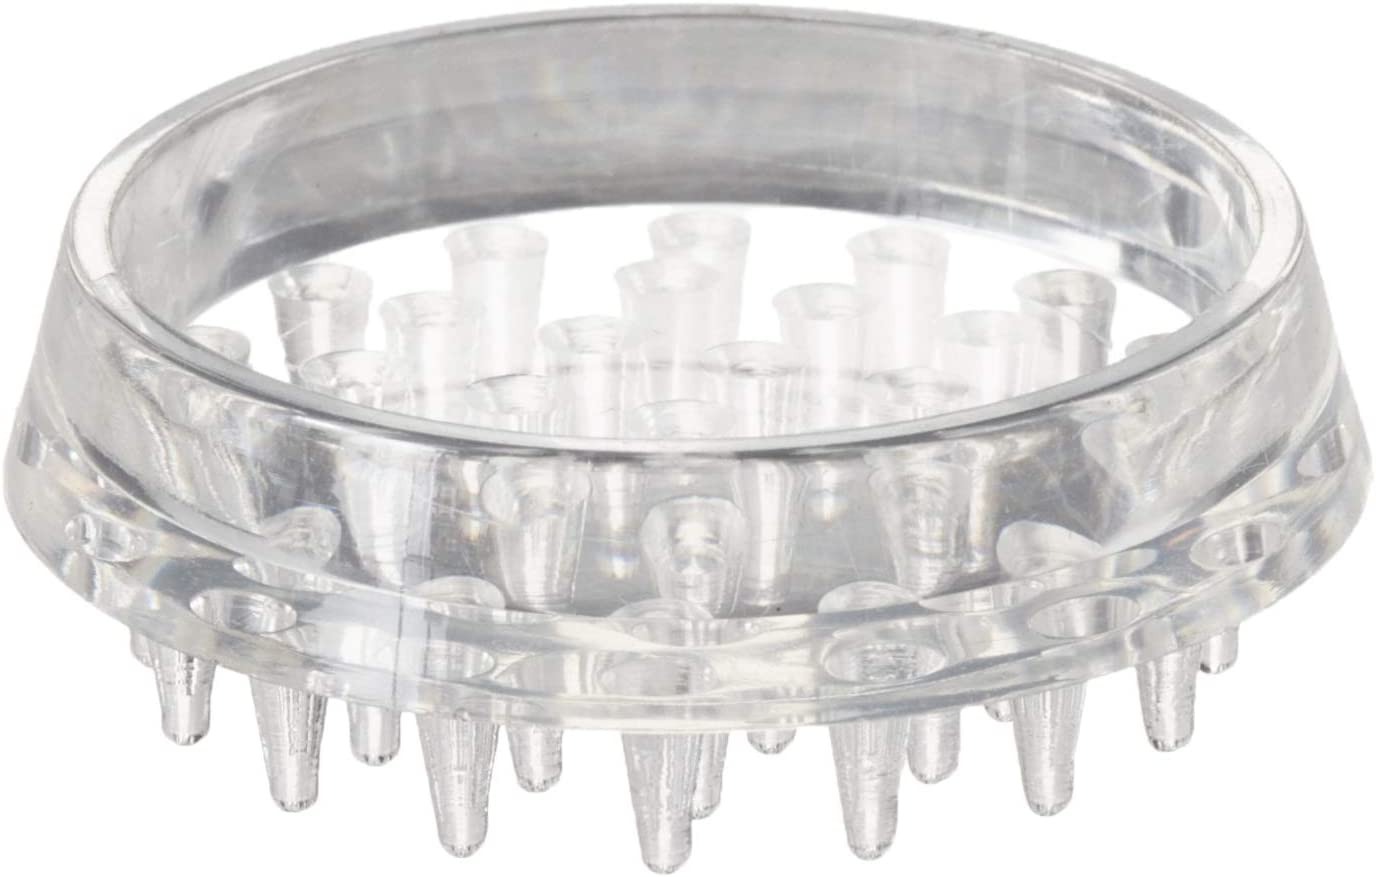 Shepherd Hardware 9081 1-1/2-Inch Spiked Furniture Cup, Clear Plastic, 4-Pack